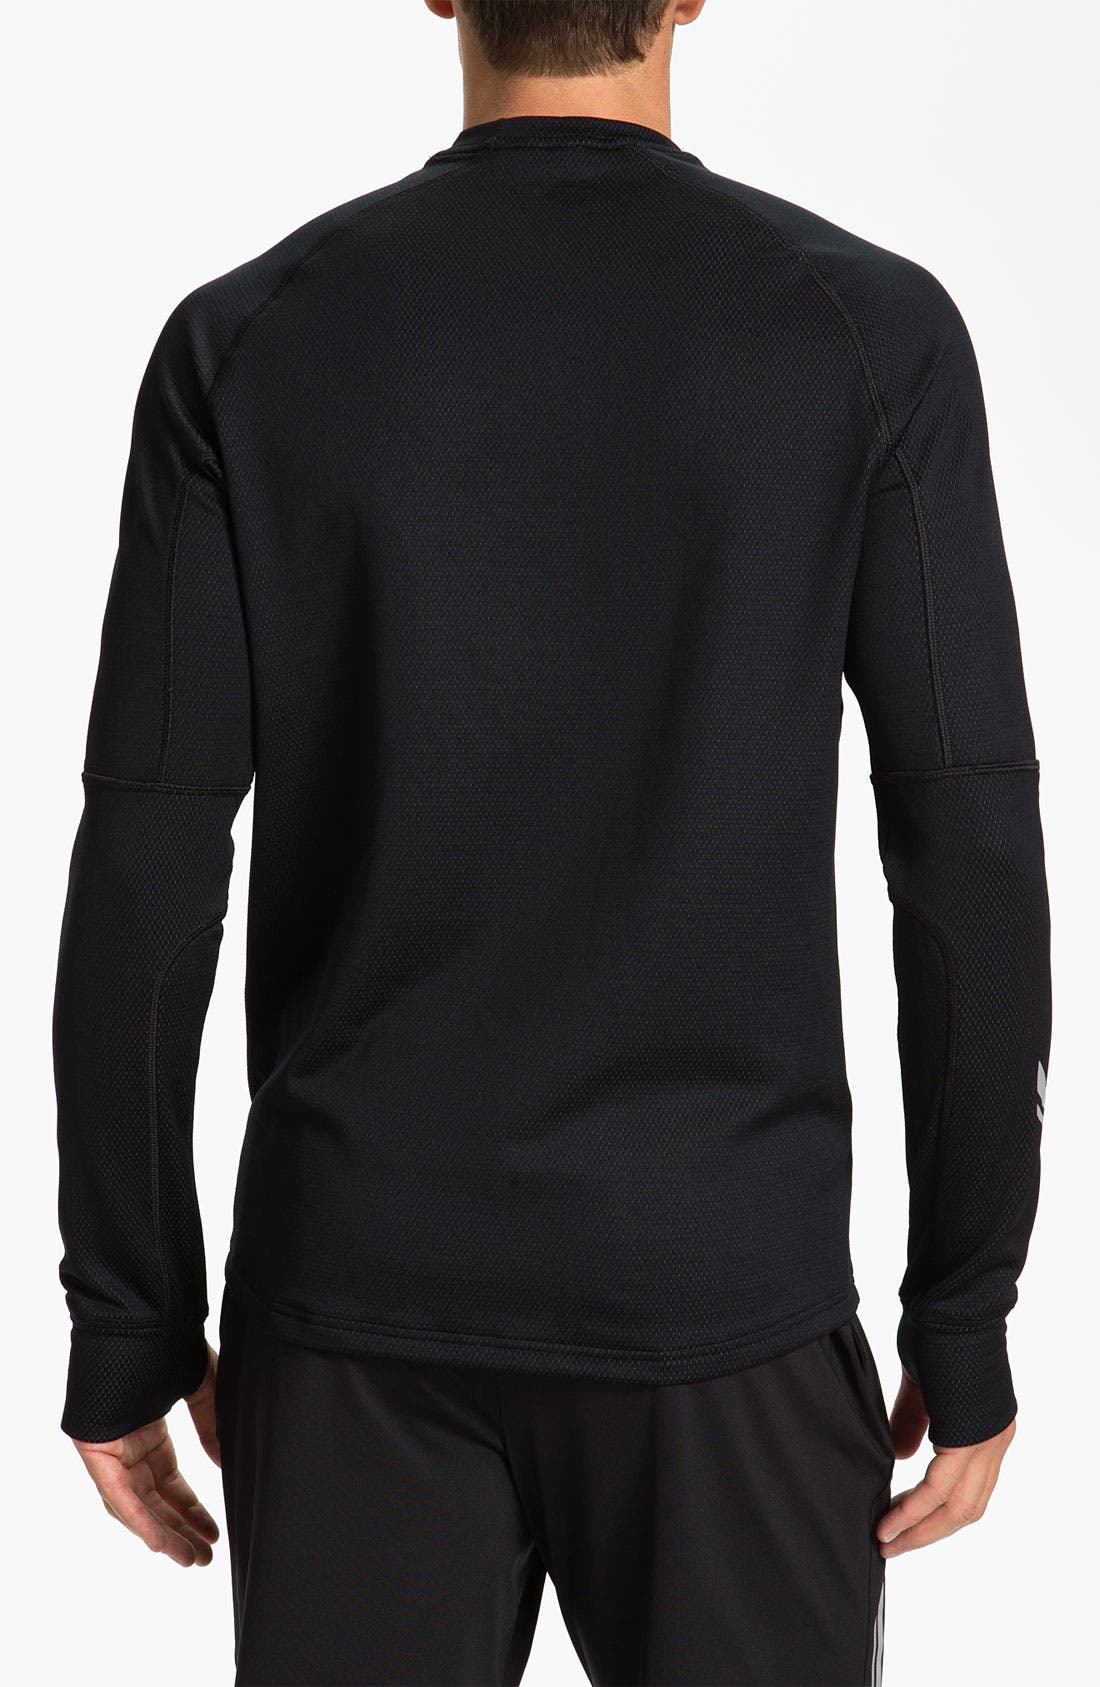 Alternate Image 2  - Under Armour 'Thermo Run' Fitted Long Sleeve ColdGear® T-Shirt (Online Exclusive)